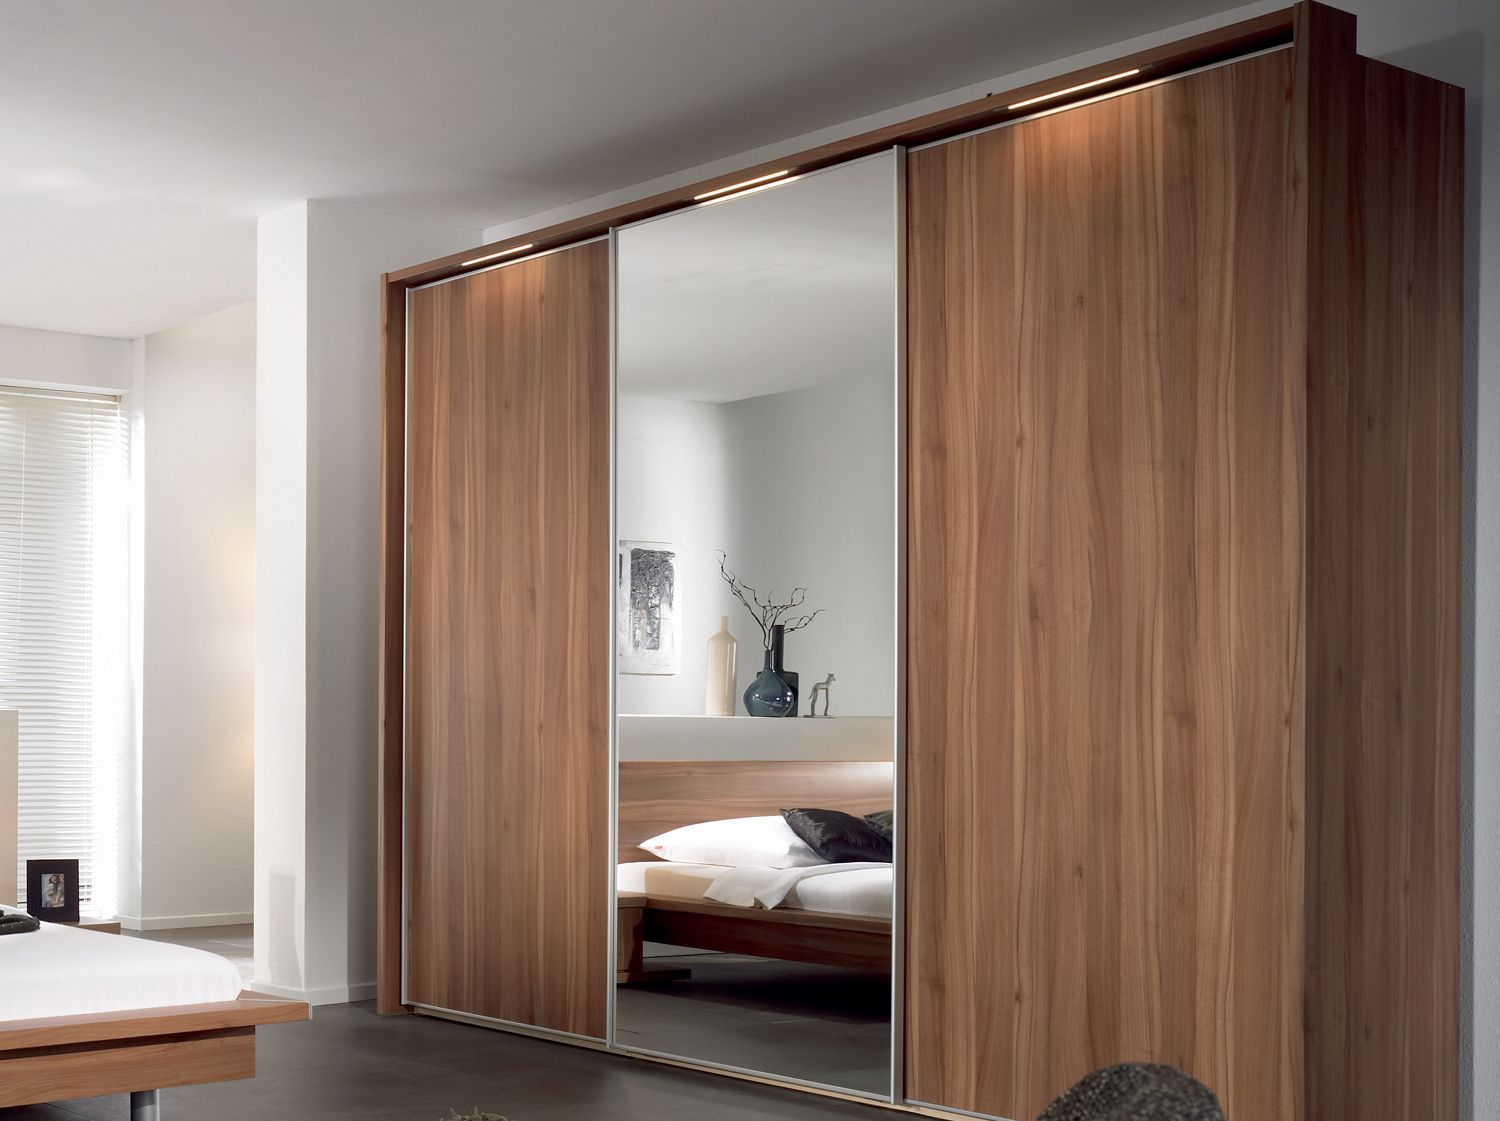 Wardrobe Bedroom Design Furniture Sliding Wardrobe Designs With Mirror For Contemporary